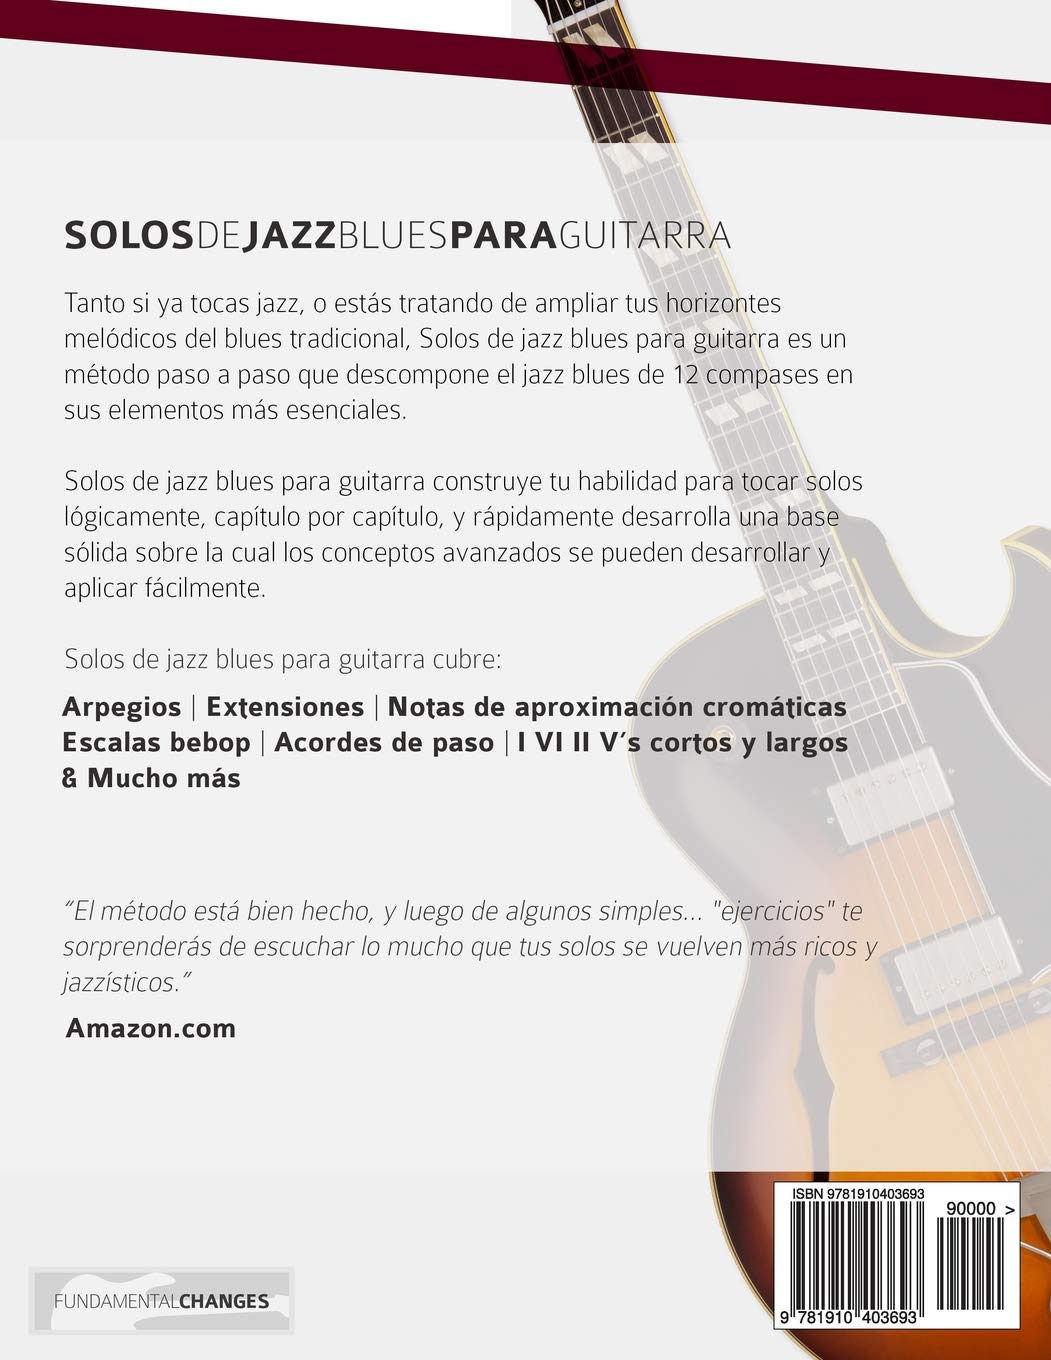 Solos de jazz blues para guitarra: Amazon.es: Mr Joseph Alexander, Mr Gustavo Bustos: Libros